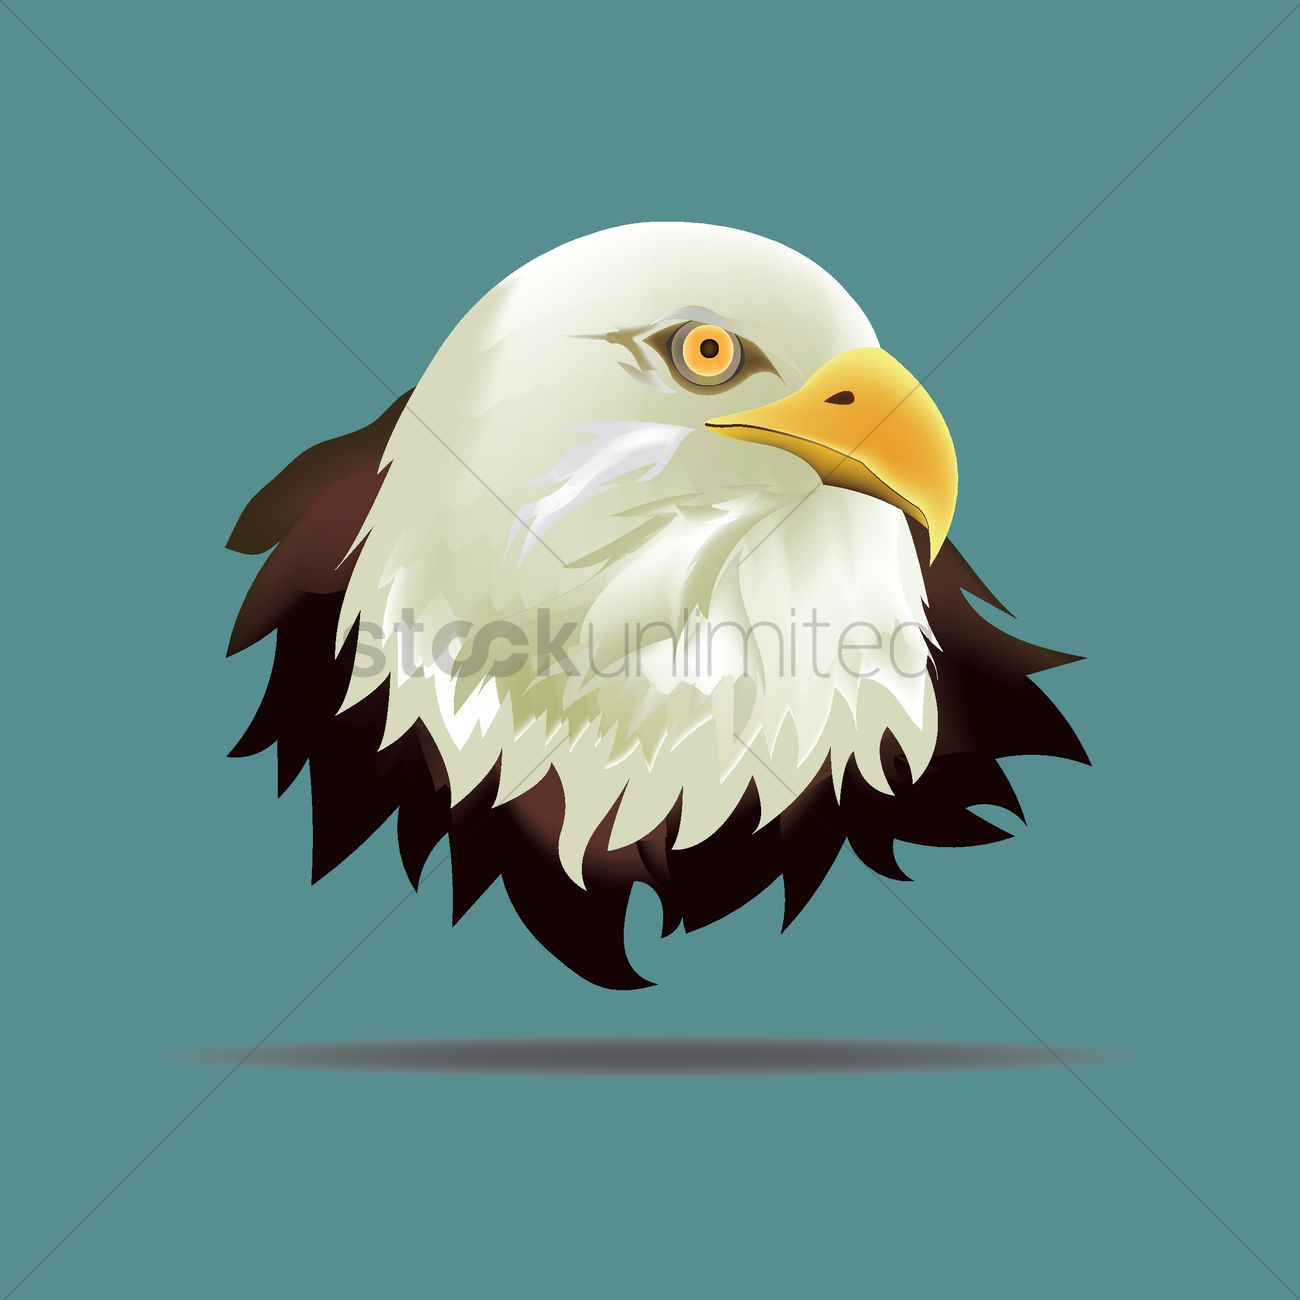 1300x1300 Eagle Face Vector Image